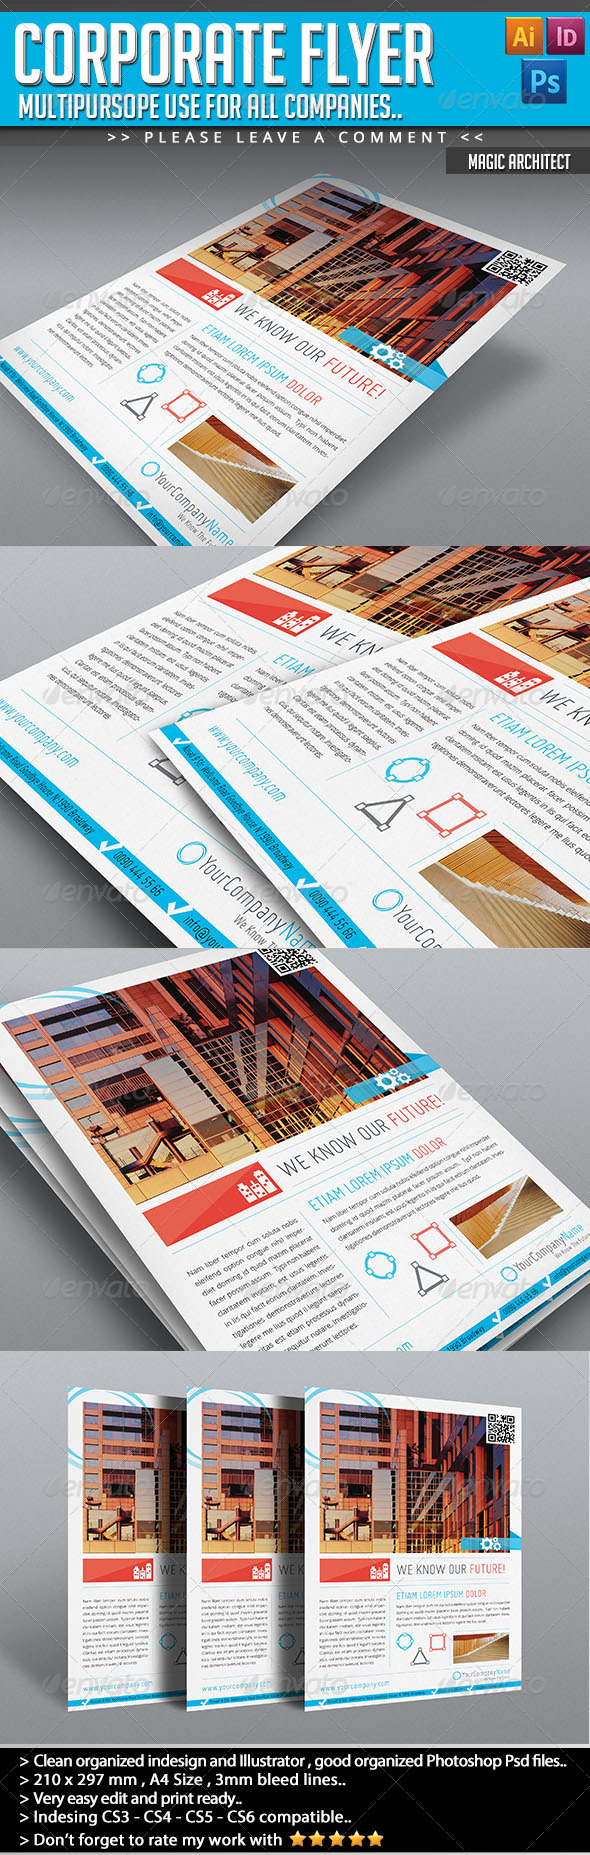 Corporate Flyer - Magic Architecture - Corporate Flyers